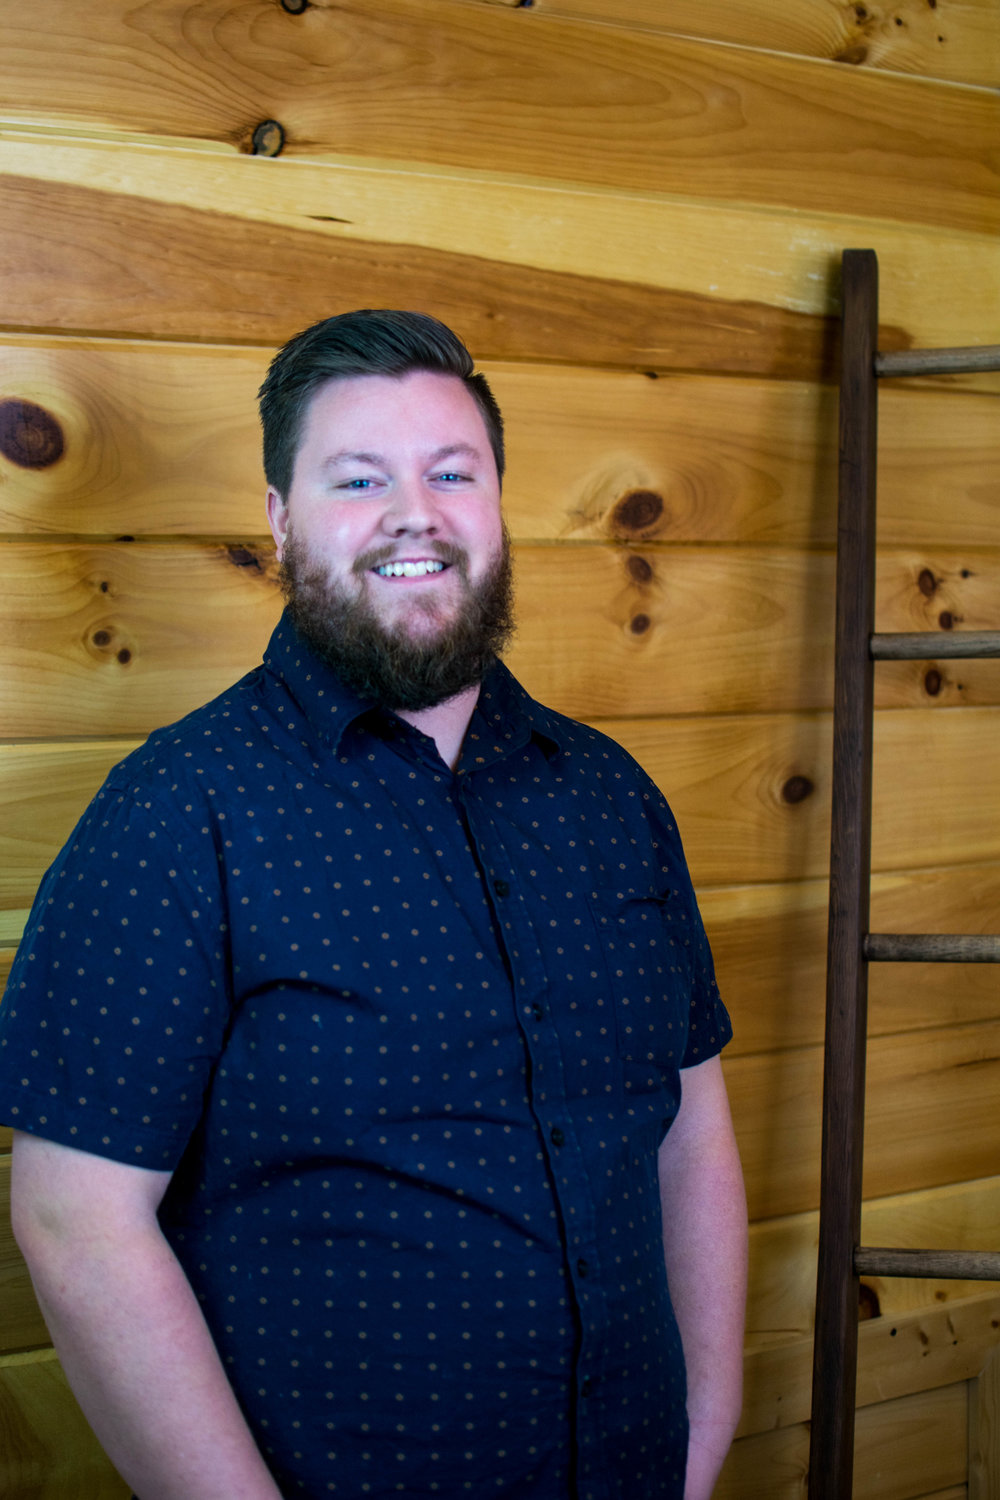 Taylor Wells, Student Minister    What he does for NT:  Taylor leads students in 6th-12th grade, with the help of a great group of volunteers. He loves to walk with the students in their faith journey and lead them into a lasting relationship with Jesus.  His Family:He has been married to his wife, Brooke, since June 2016.   In His Spare Time: Taylor loves to read, write, drink coffee, and play disc golf! He and Brooke also operate WellMade Goods, which is their business of leather goods and art!   His Favorite Bible Verse: Taylor's favorite Scripture is Matthew 22:37-40, which he attempts to live out everyday.